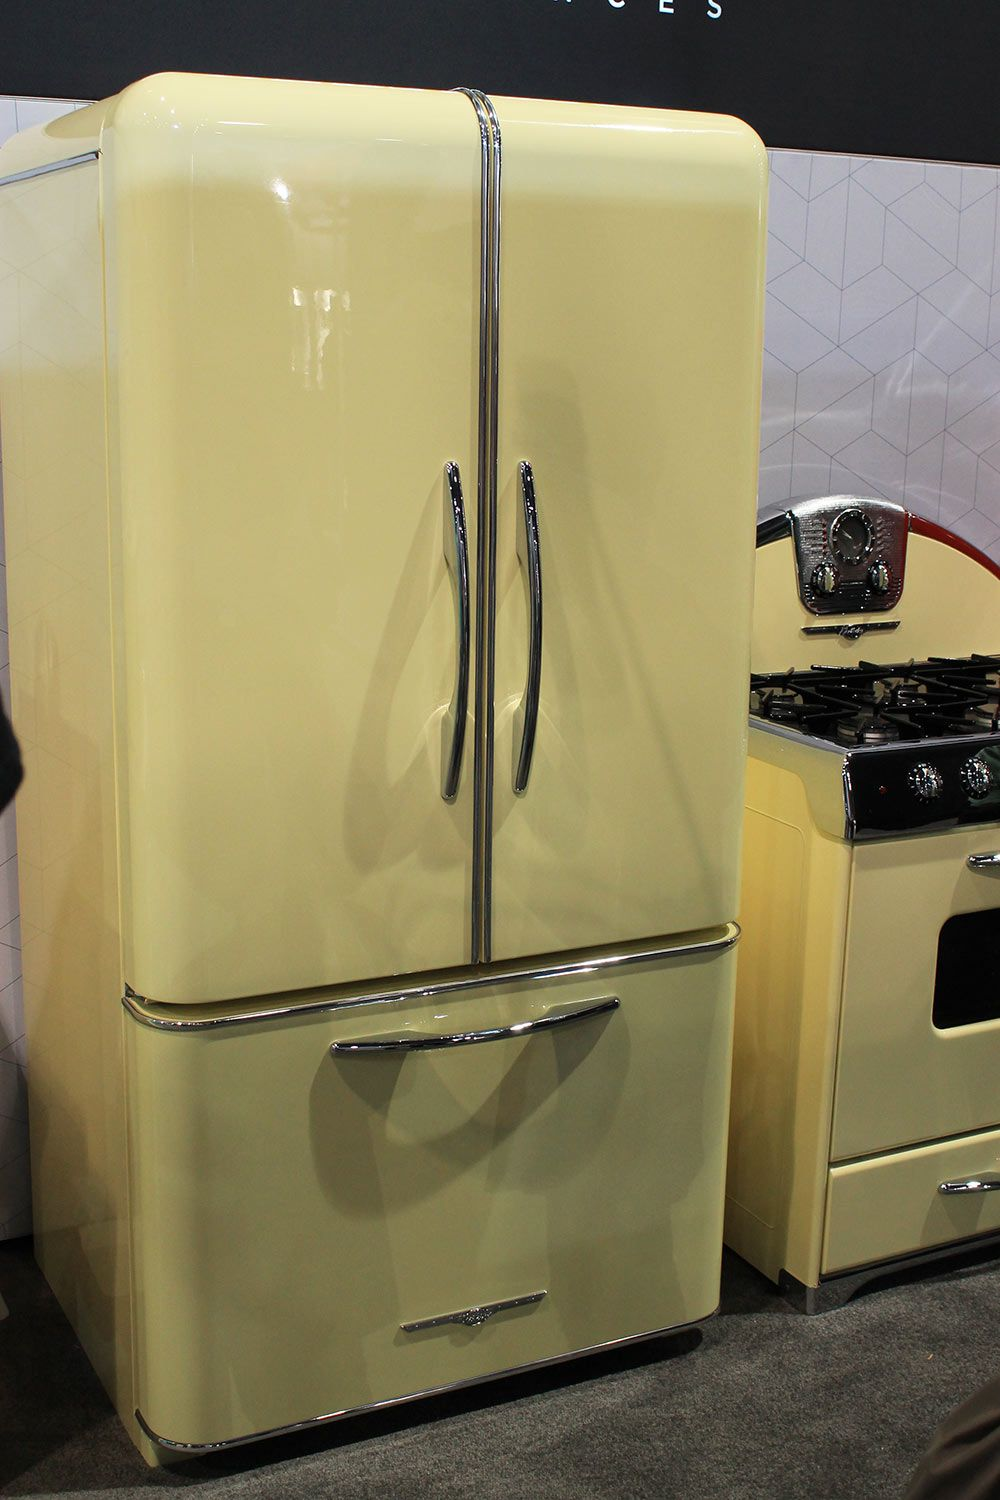 Bon Northstar Vintage Style Kitchen Appliances From Elmira Stove Works